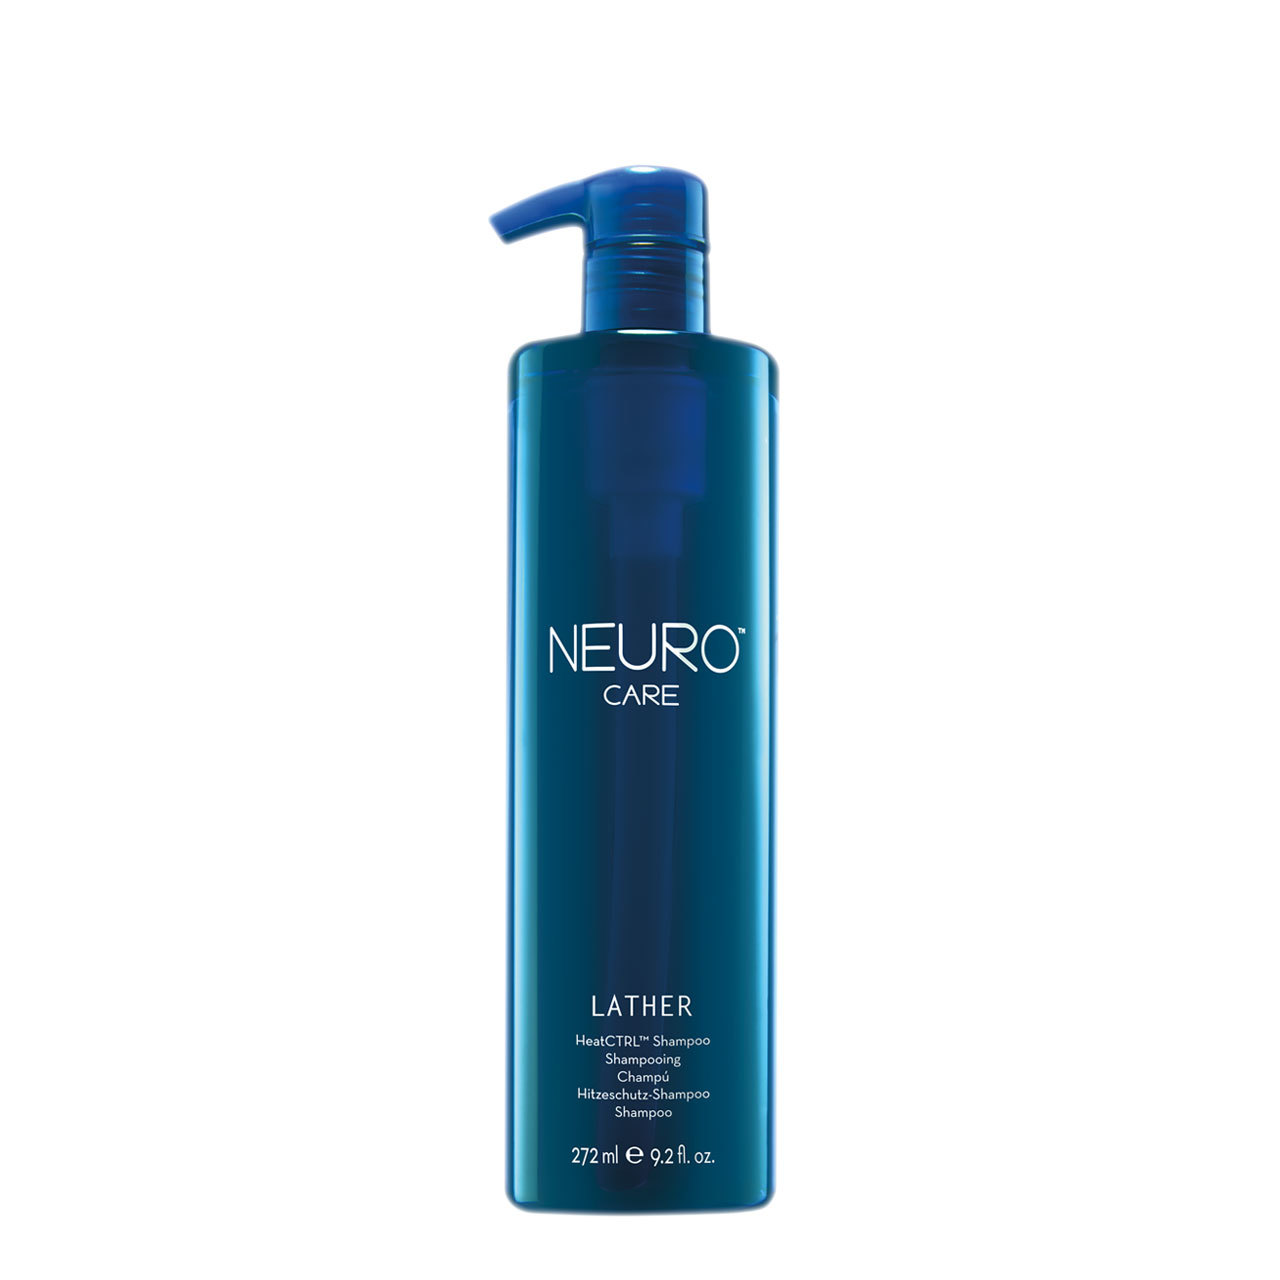 Šampón Neuro Lather (272ml) | Paul Mitchell